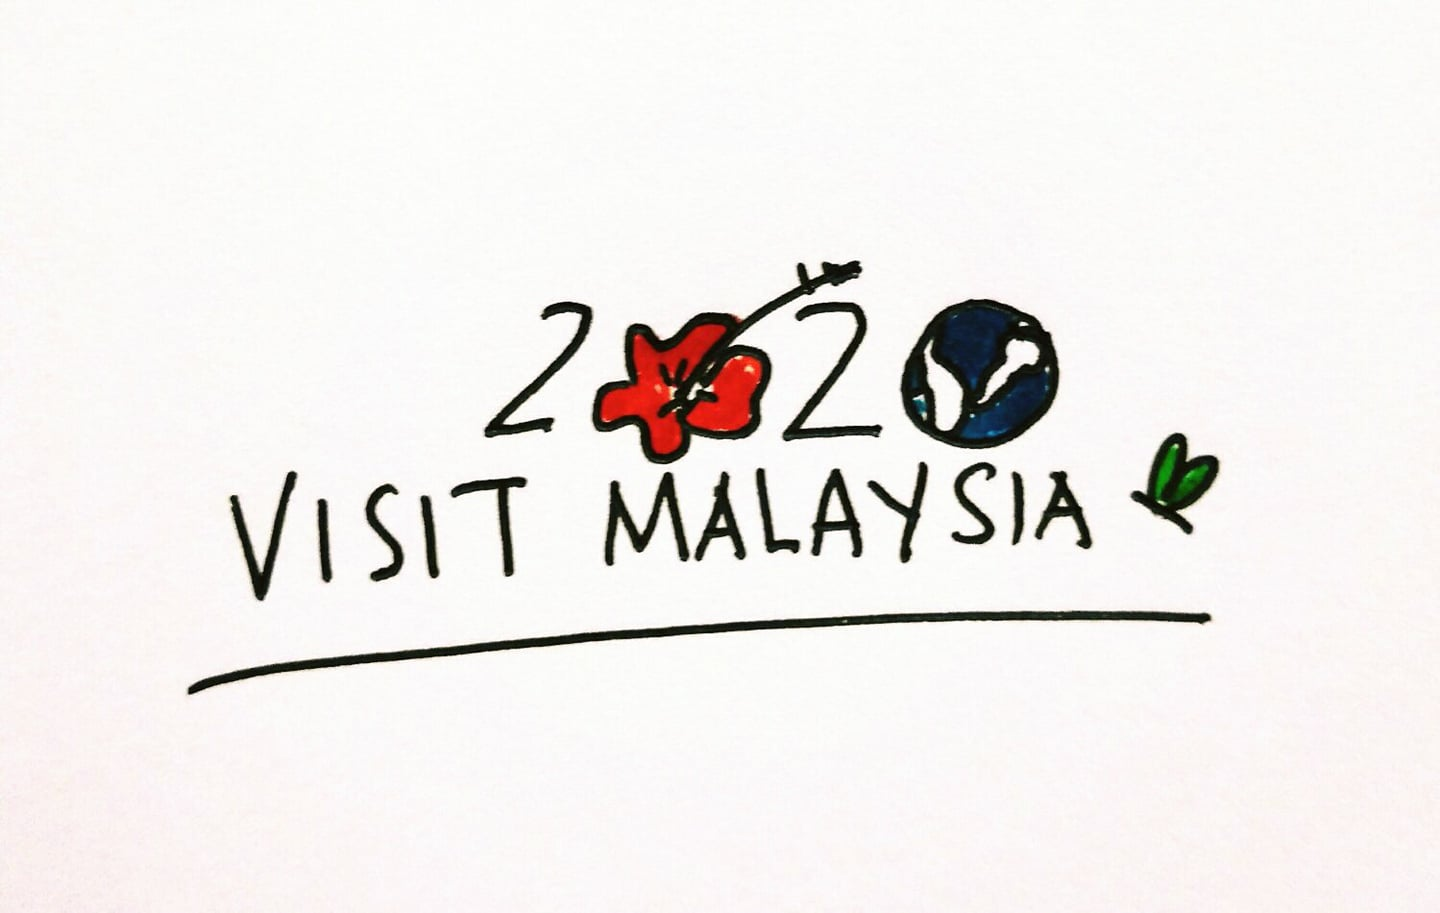 M'sians Are Challenged To Fix The Visit Malaysia 2020 Logo